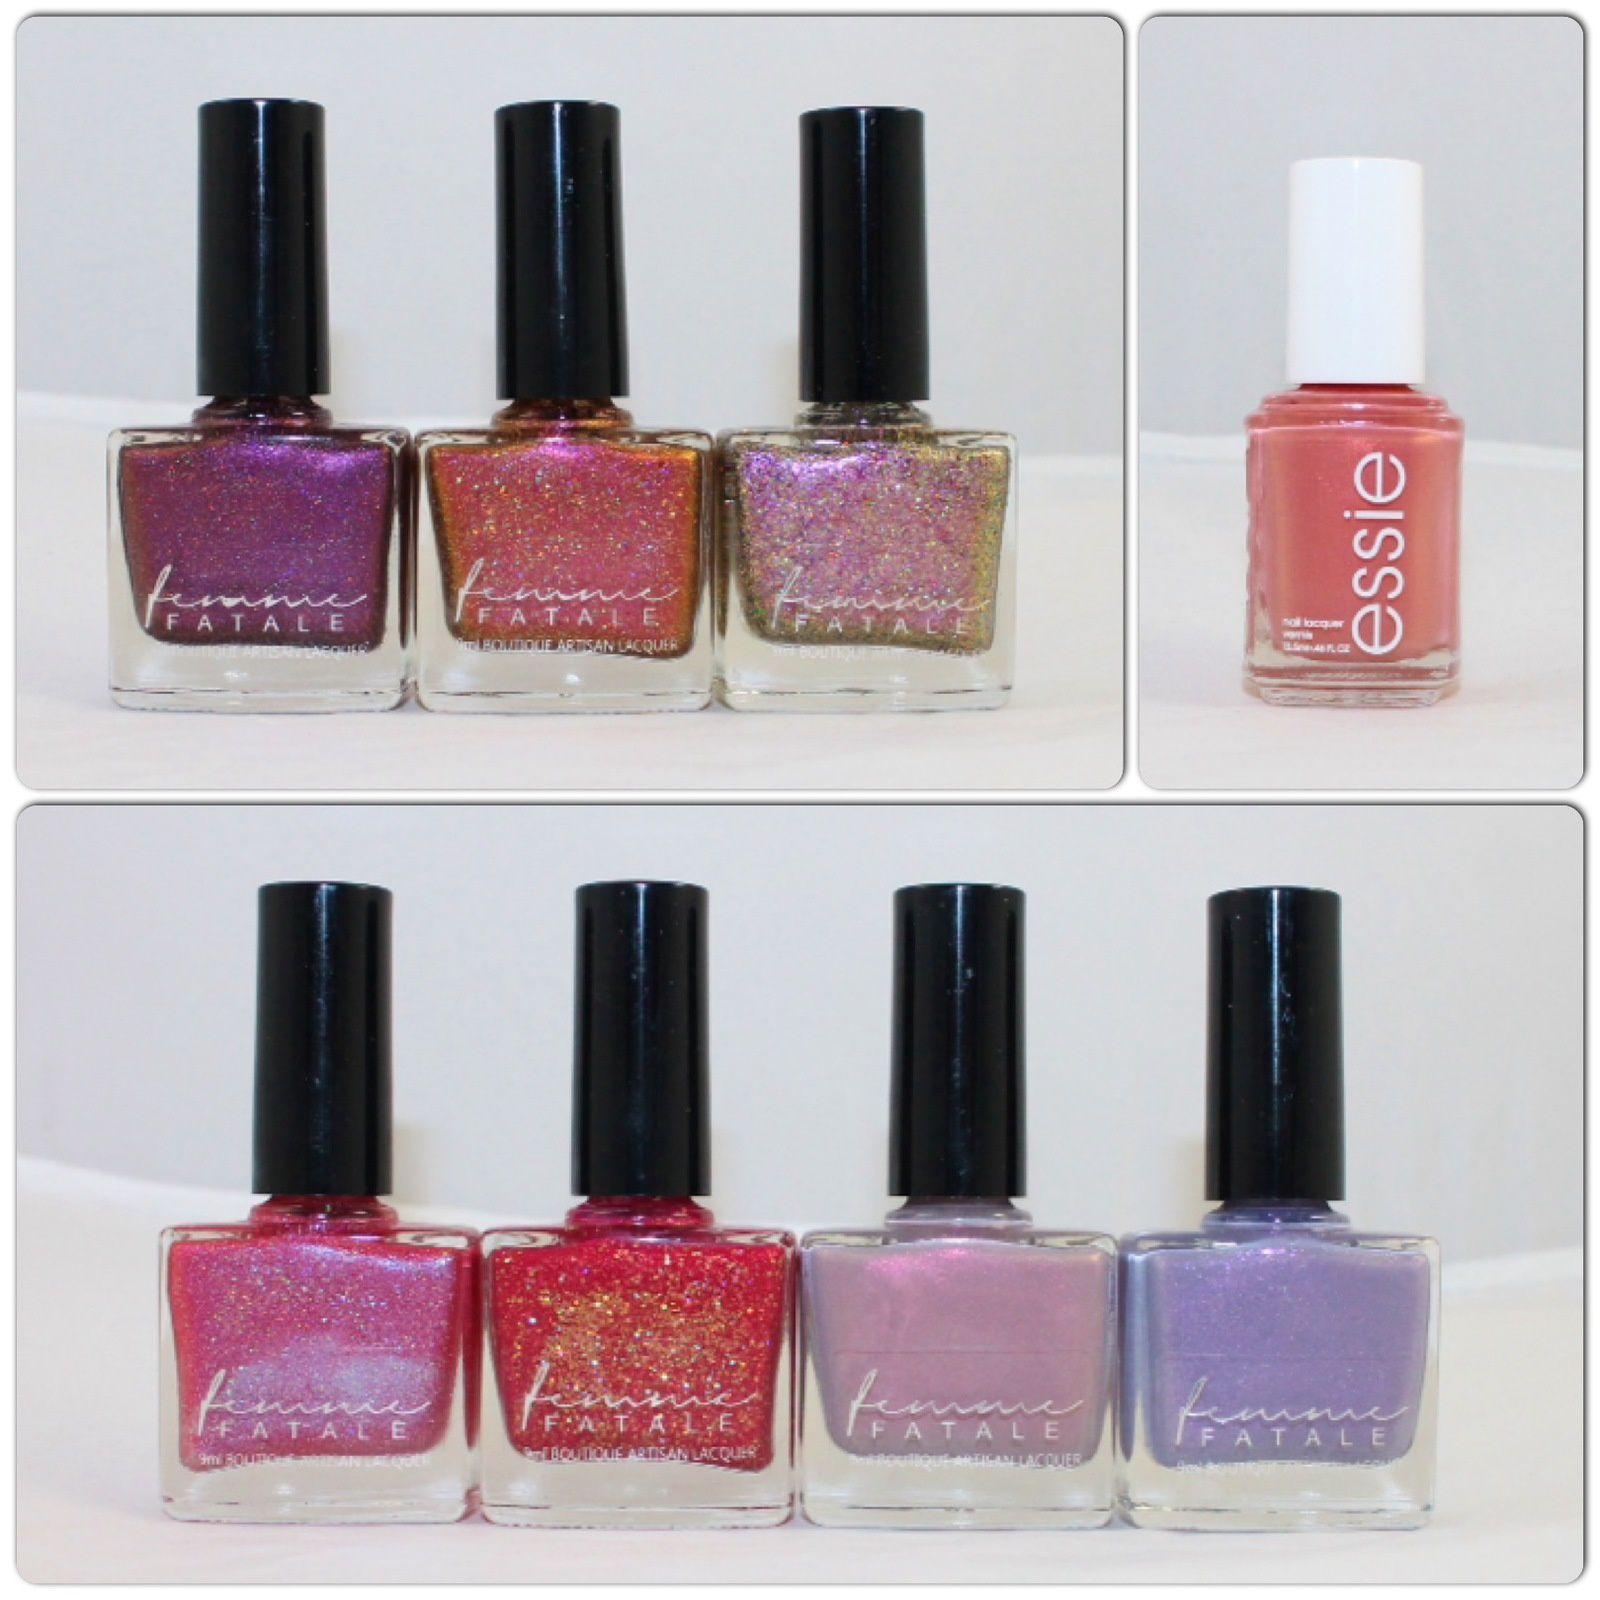 Femme Fatale The Last Resort, Welcome to Mars, The Egotrip, Venusville, Clever Girl, 2084, Ready for Dreamland? Essie Oh Behave!